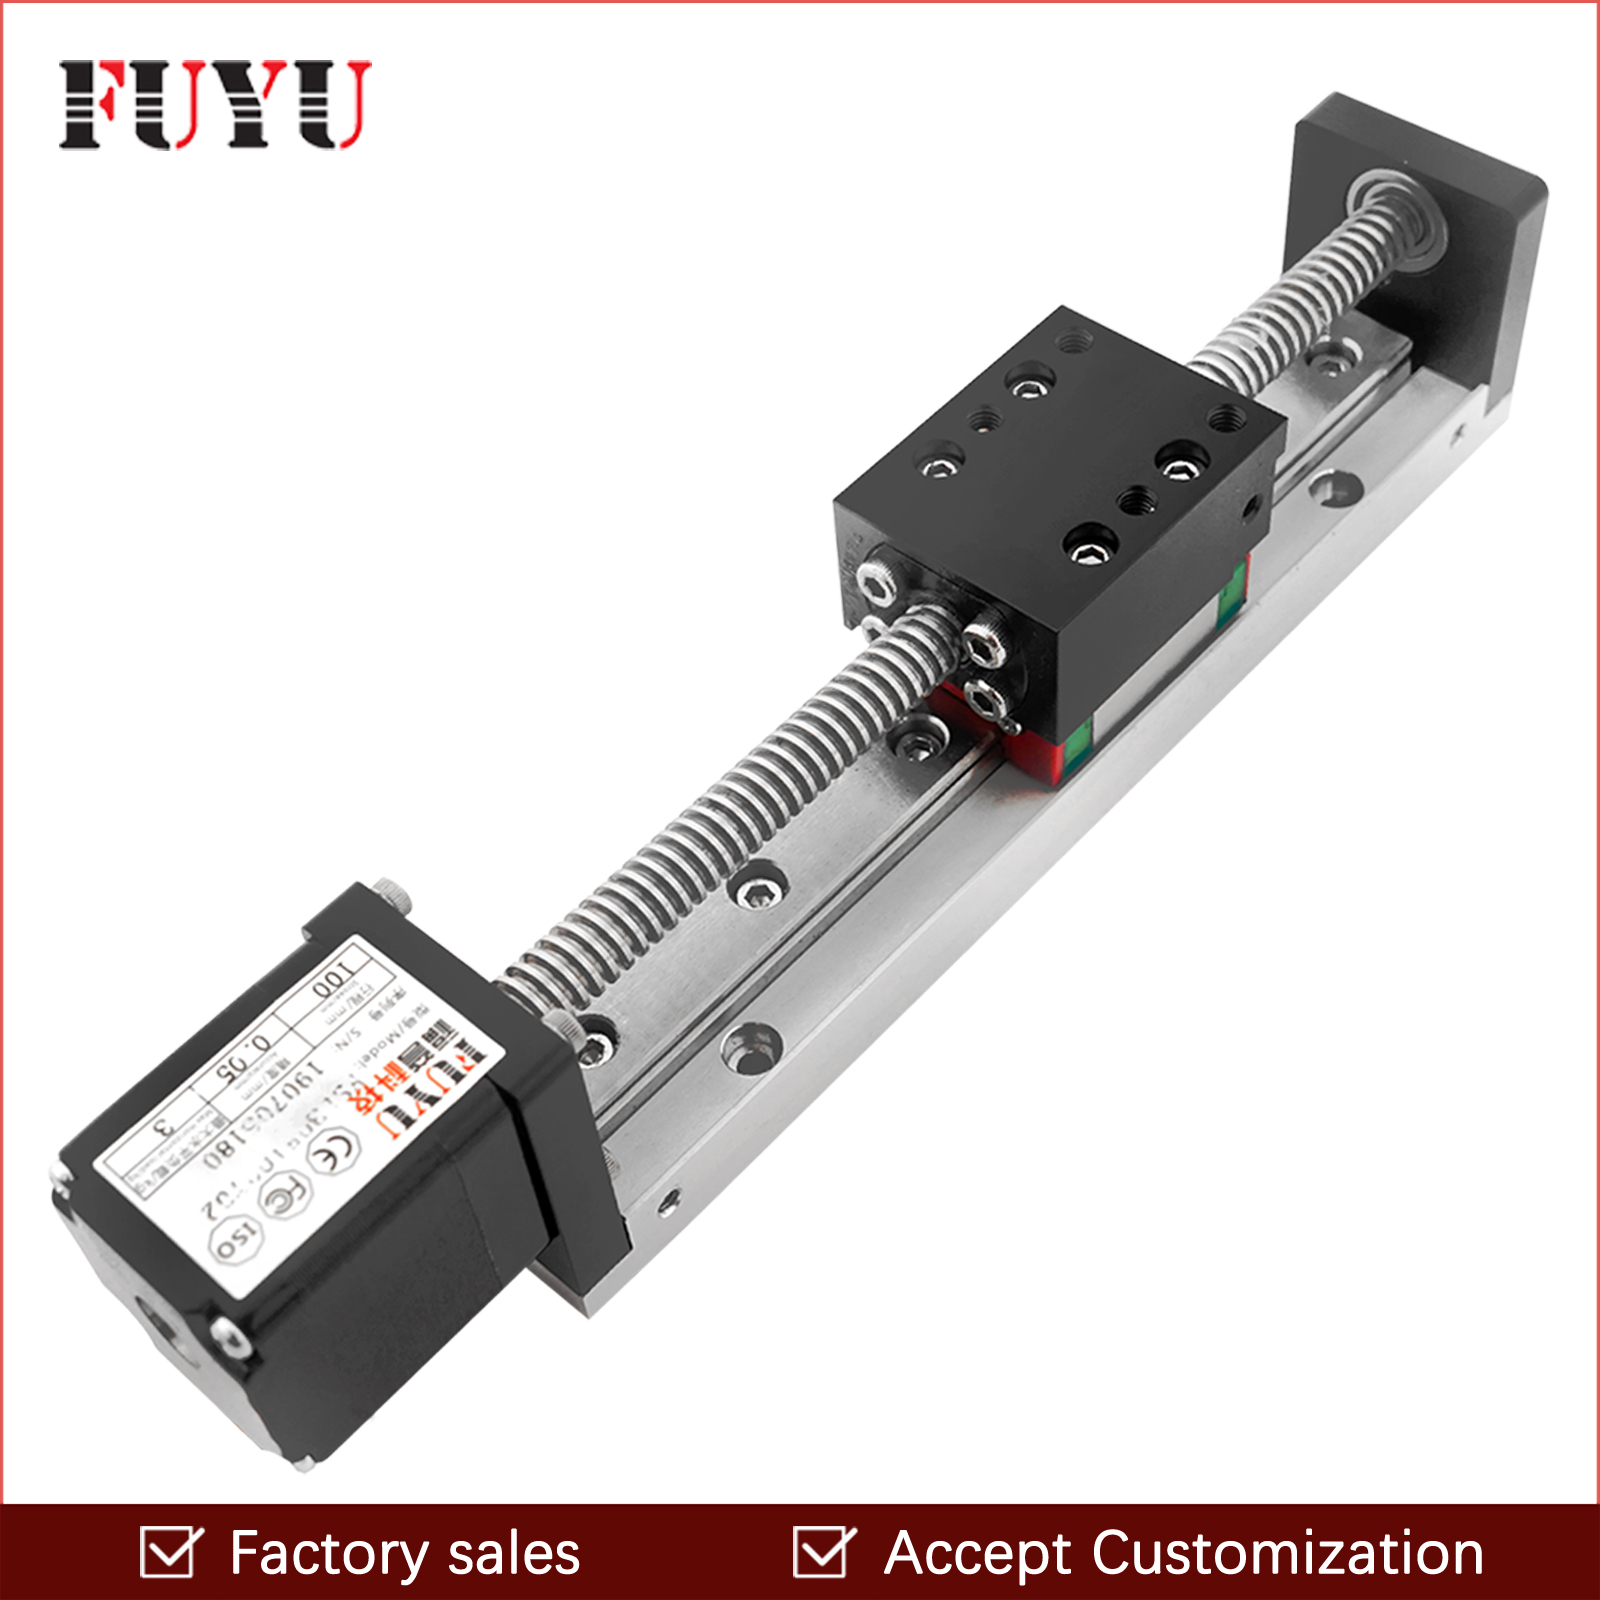 2pcs12mm Linear Guide Actuator Slide Stage with 4pcs High Precision Baring Slide Block for CNC Engraving